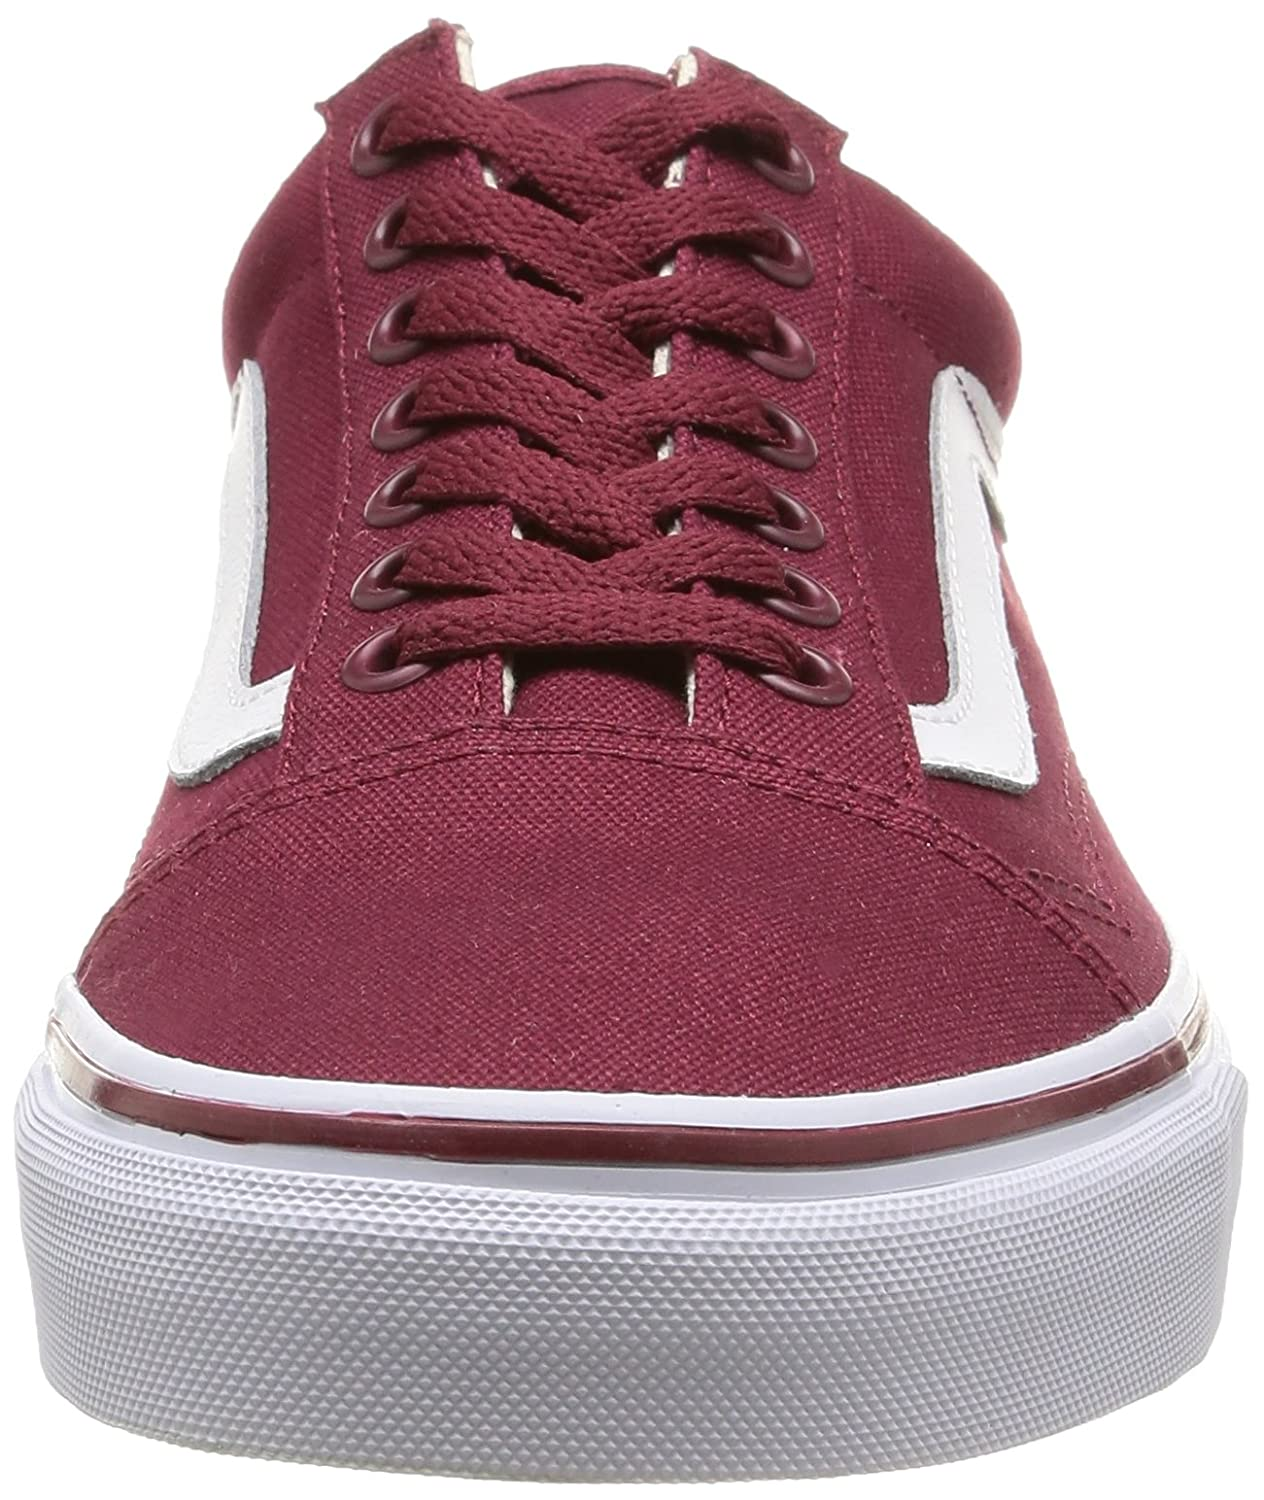 vans old skool zapatillas unisex adulto